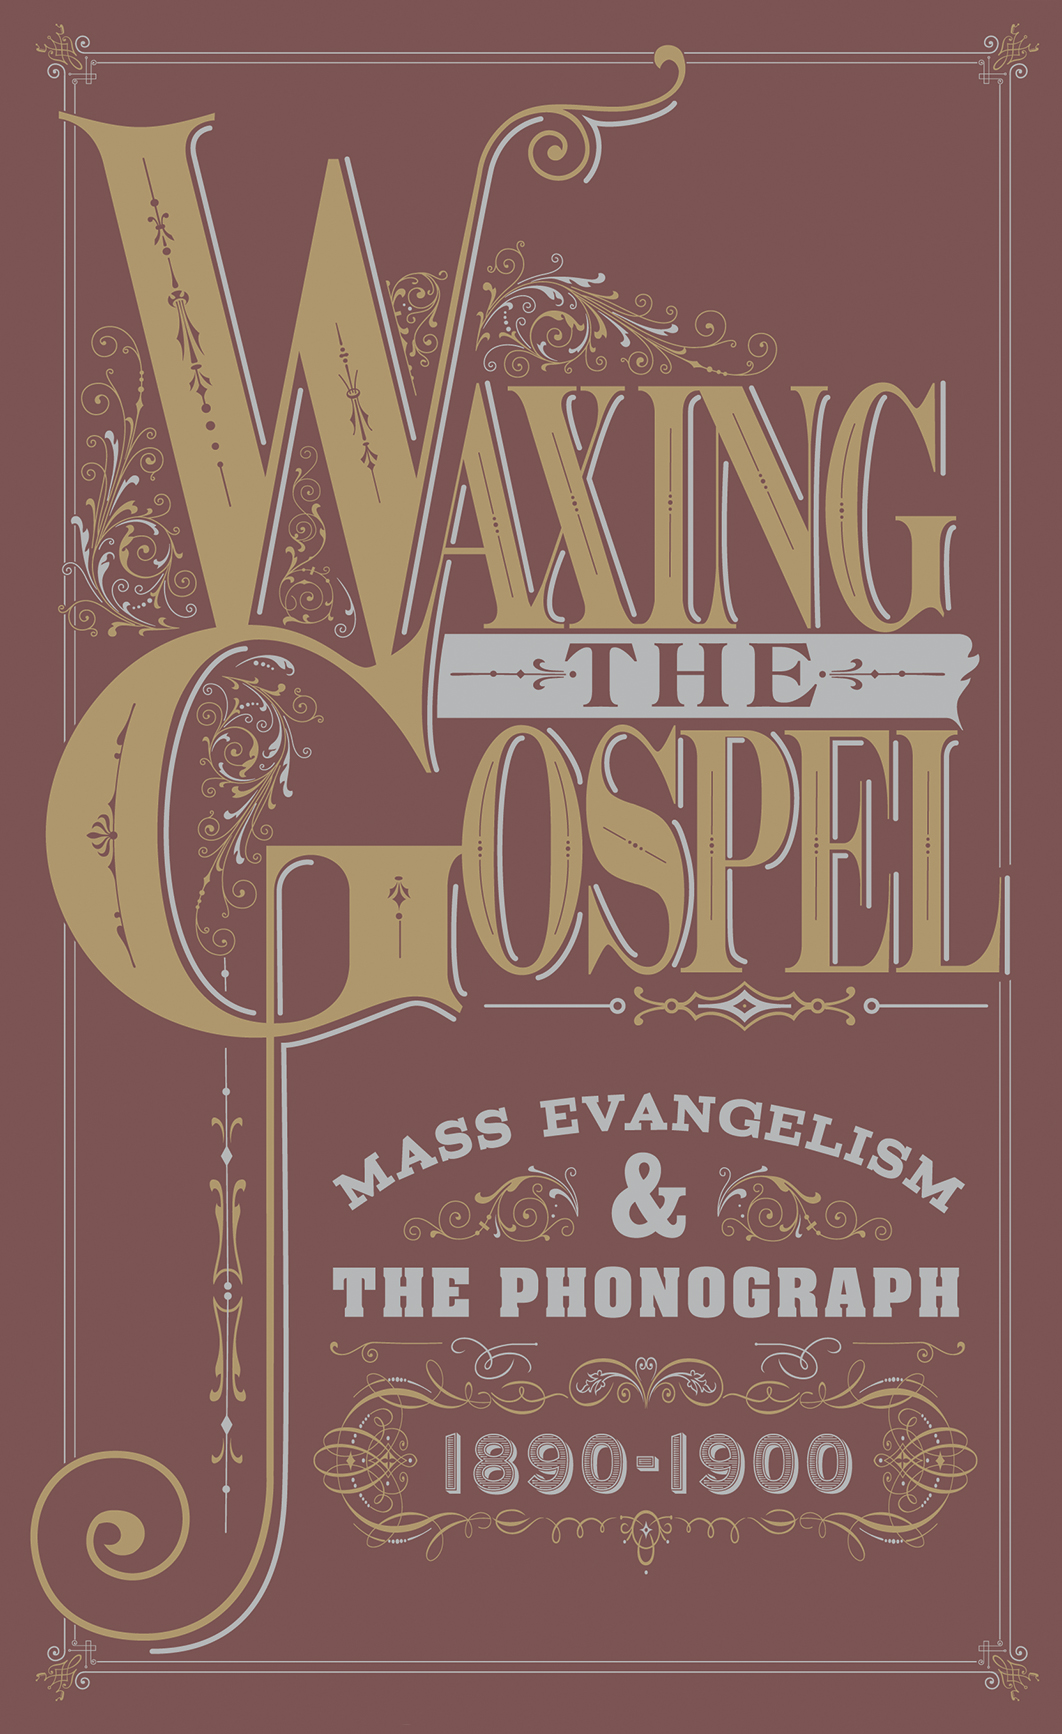 FOLK/GOSPEL MUSIC NEWS: Groundbreaking Waxing The Gospel Box Set/Book from Archeophone Records Set for Sept. 30 Release